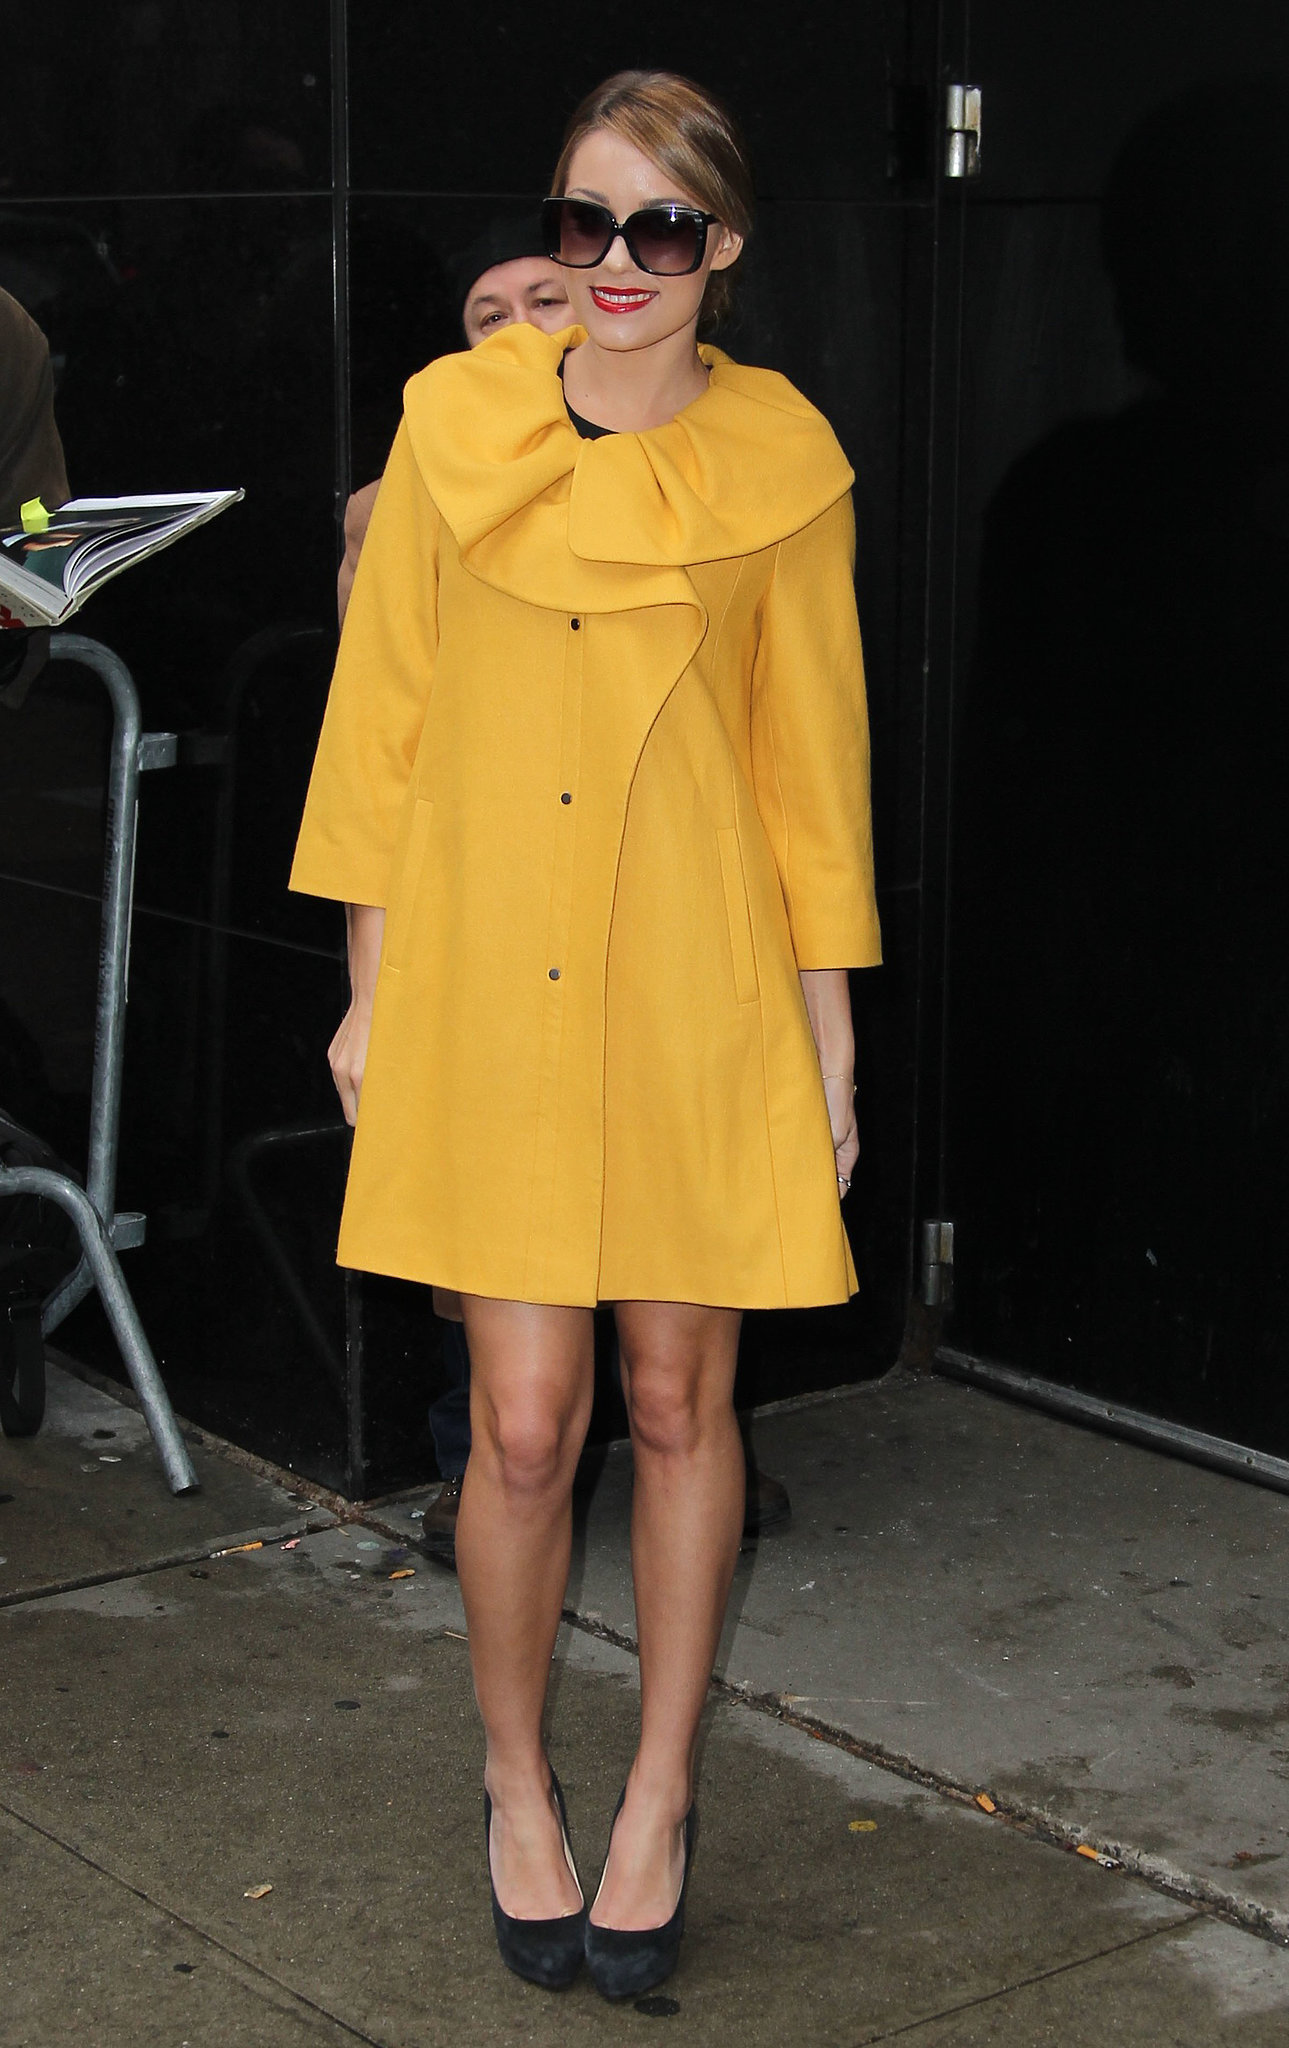 While out and about in NYC, Conrad worked a bright yellow coat, complete with ruffle detail. Lesson from Lauren: never underestimate the power of a statement coat.